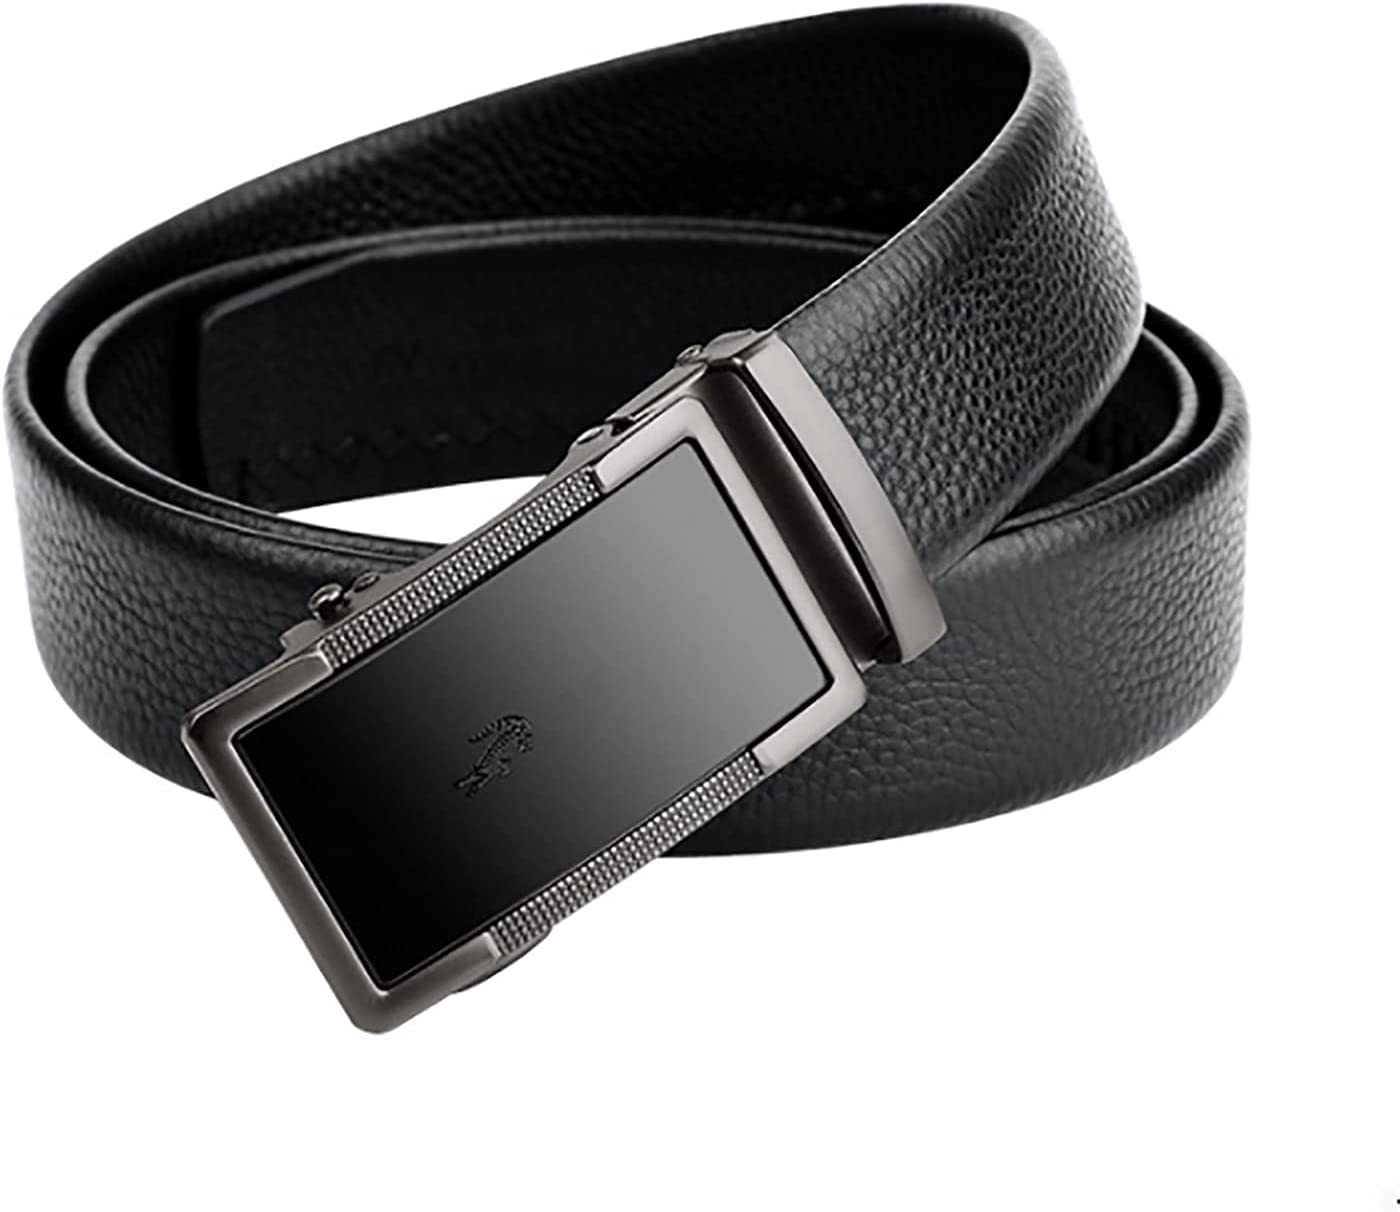 xzyq Trendy Popular product Belt Leather Men's Limited time trial price Automatic B Buckle All-Match